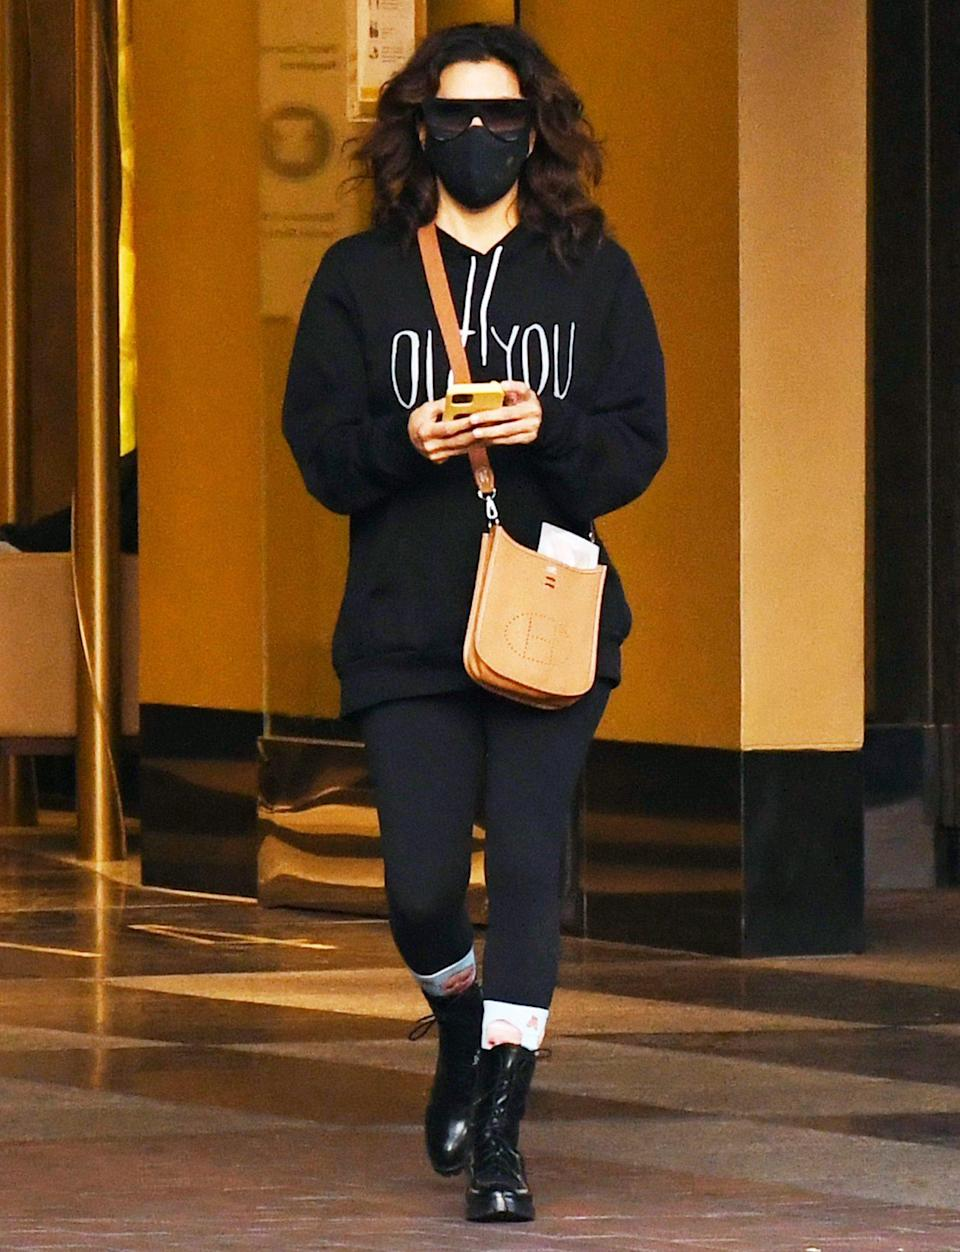 <p>Eva Longoria bundles up in a black sweatshirt, pants and boots while out on Monday in L.A.</p>